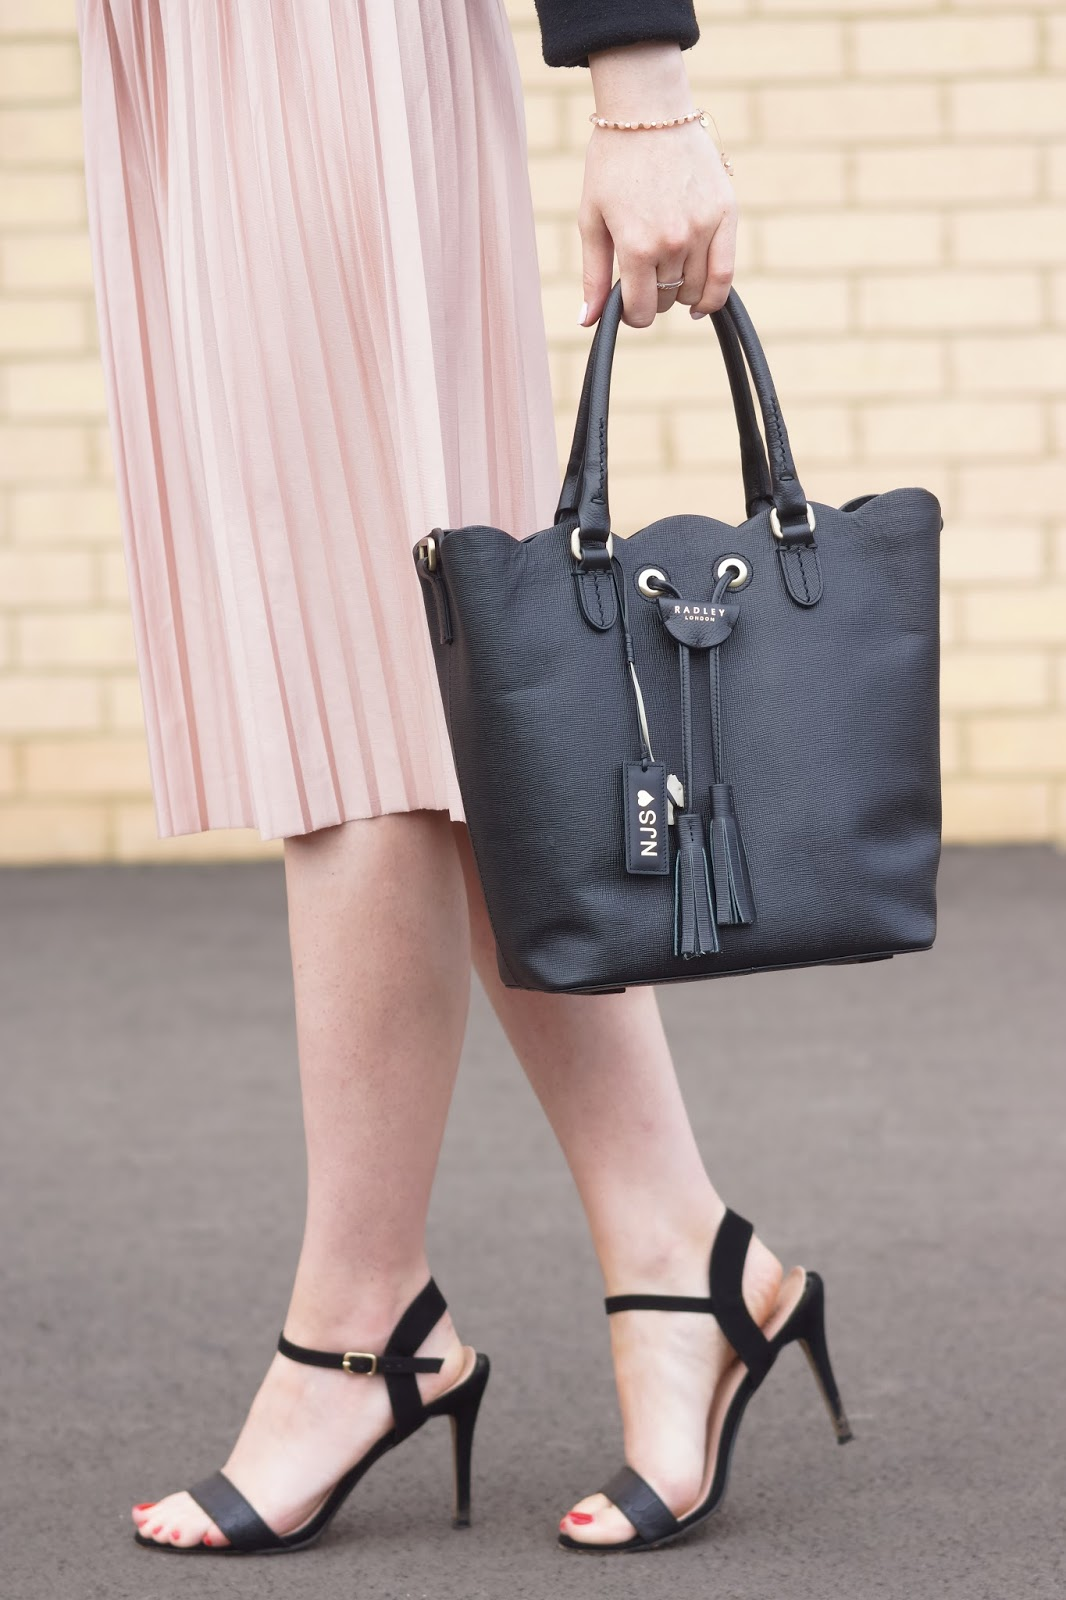 Hello Freckles Radley Personalisation Southern Row Scallop Tote Bag Dalton Park Street Style Outfit